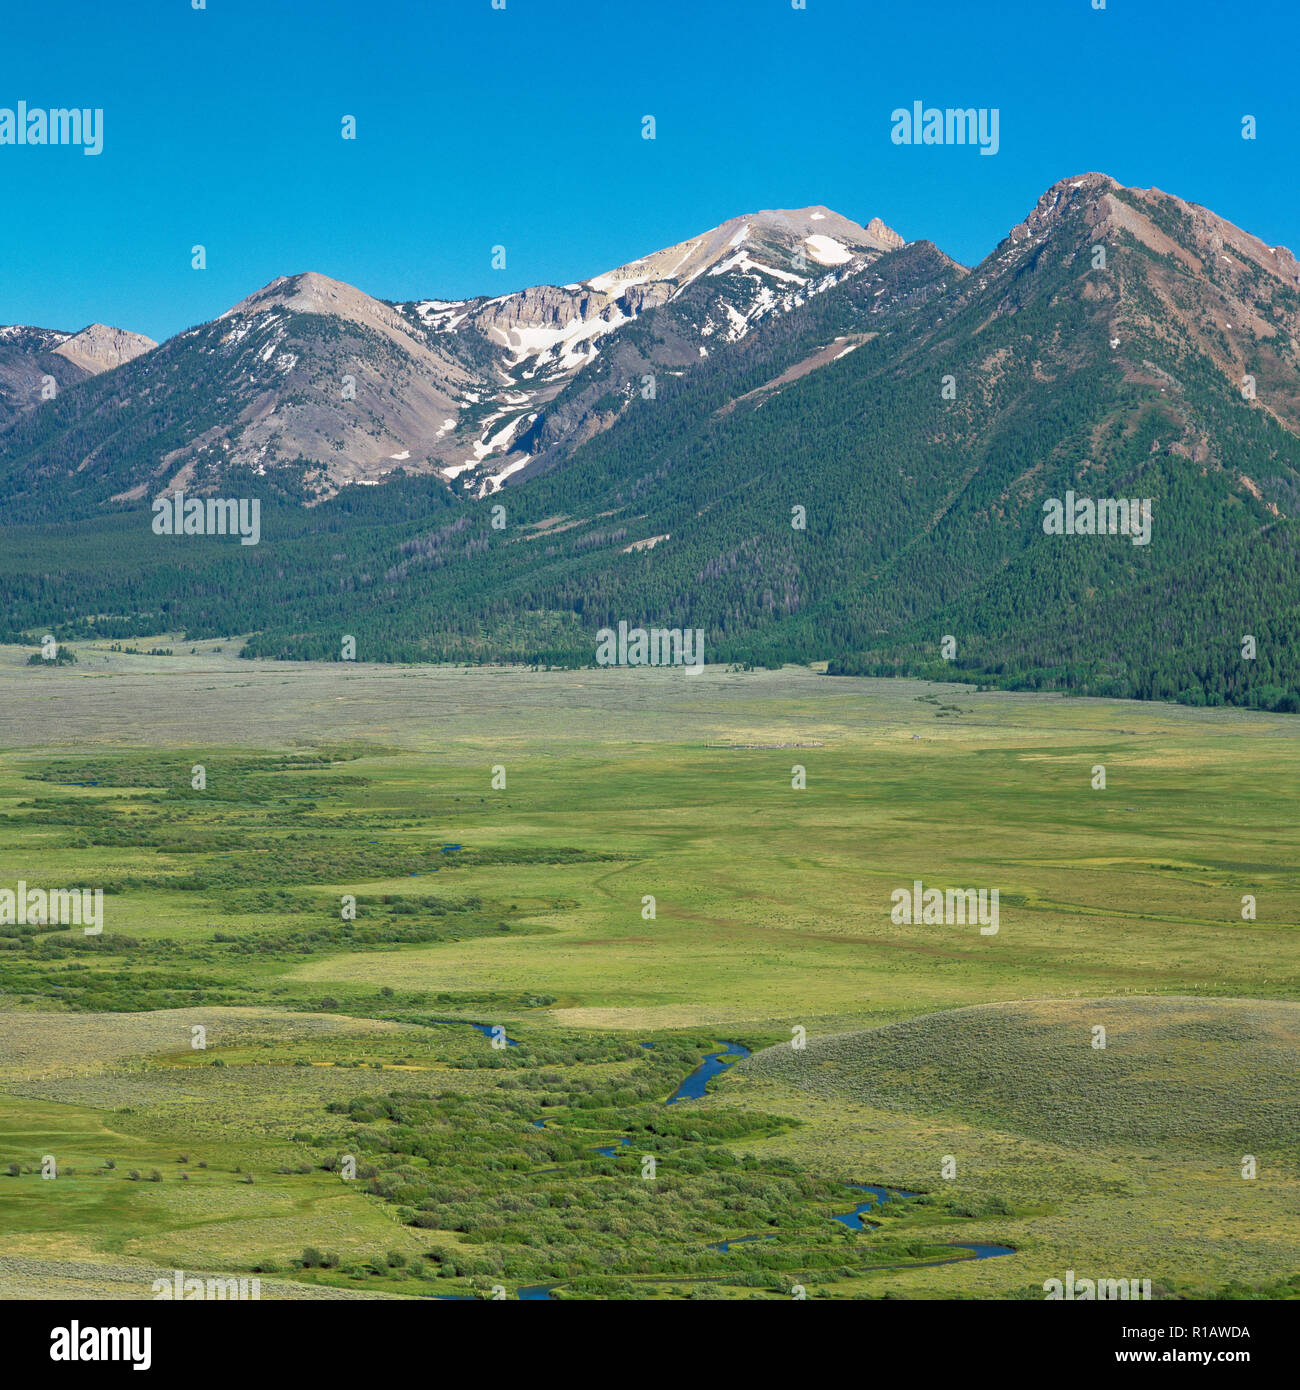 centennial mountains above red rock creek valley near red rock pass east of lakeview, montana - Stock Image